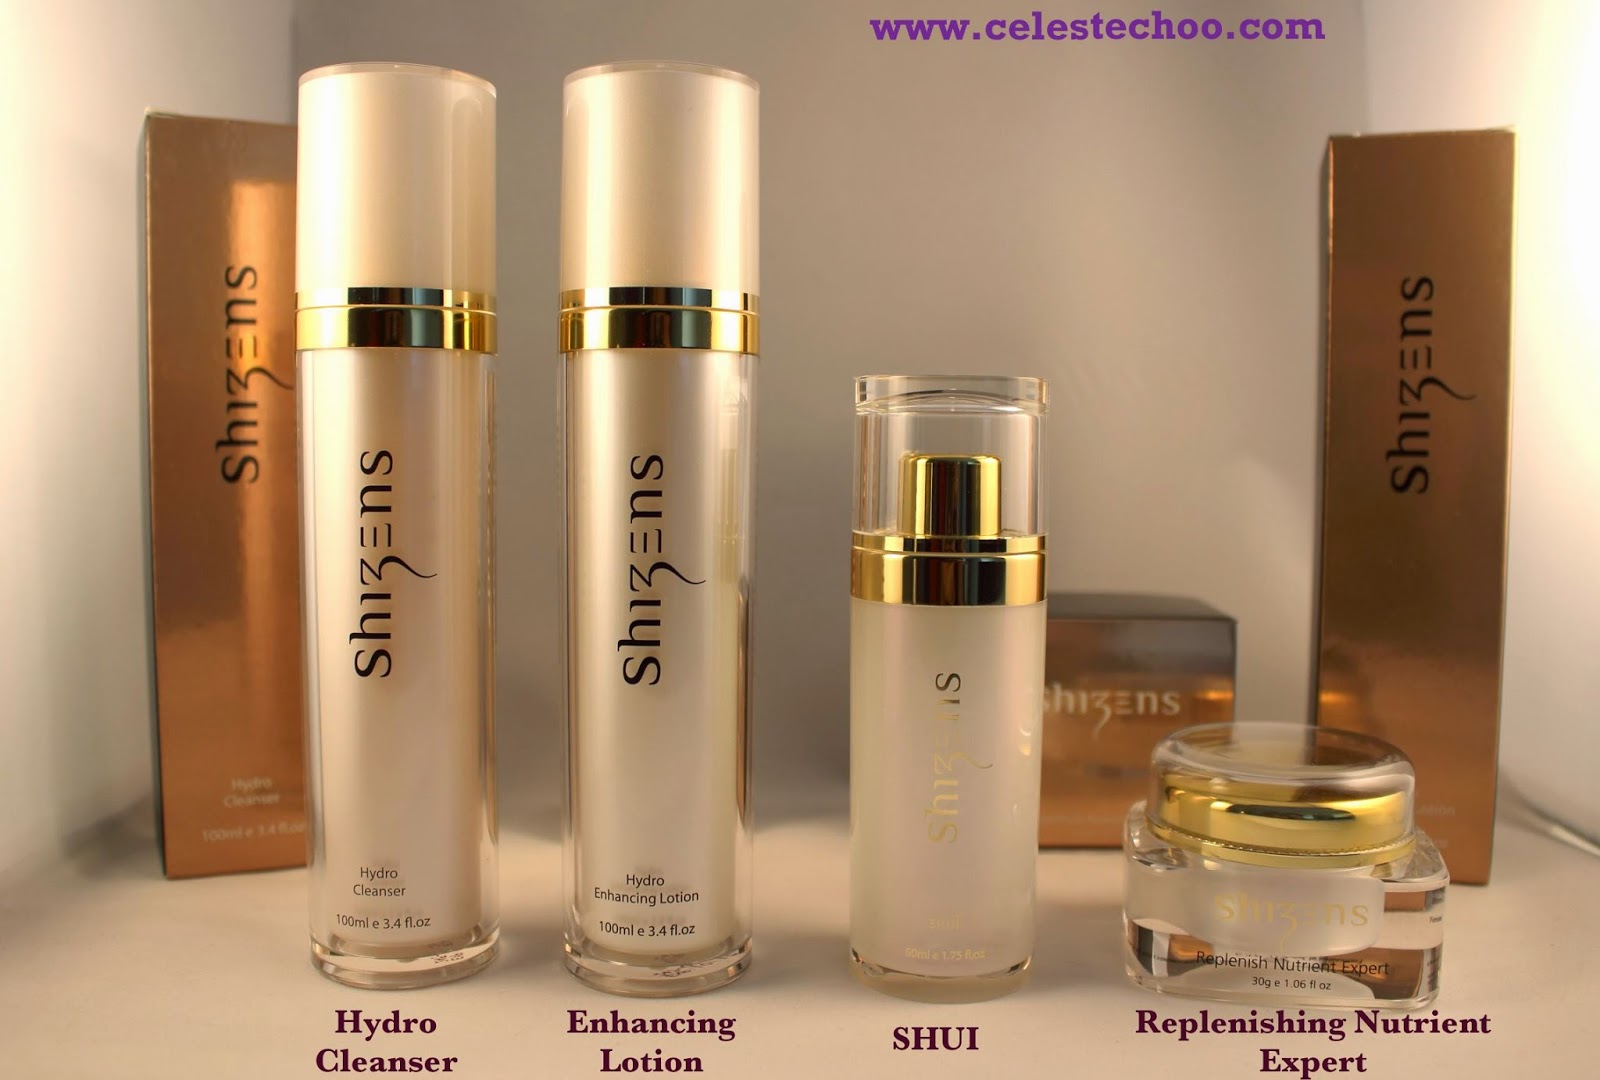 shizens-hydro-anti-aging-collection-price-malaysia